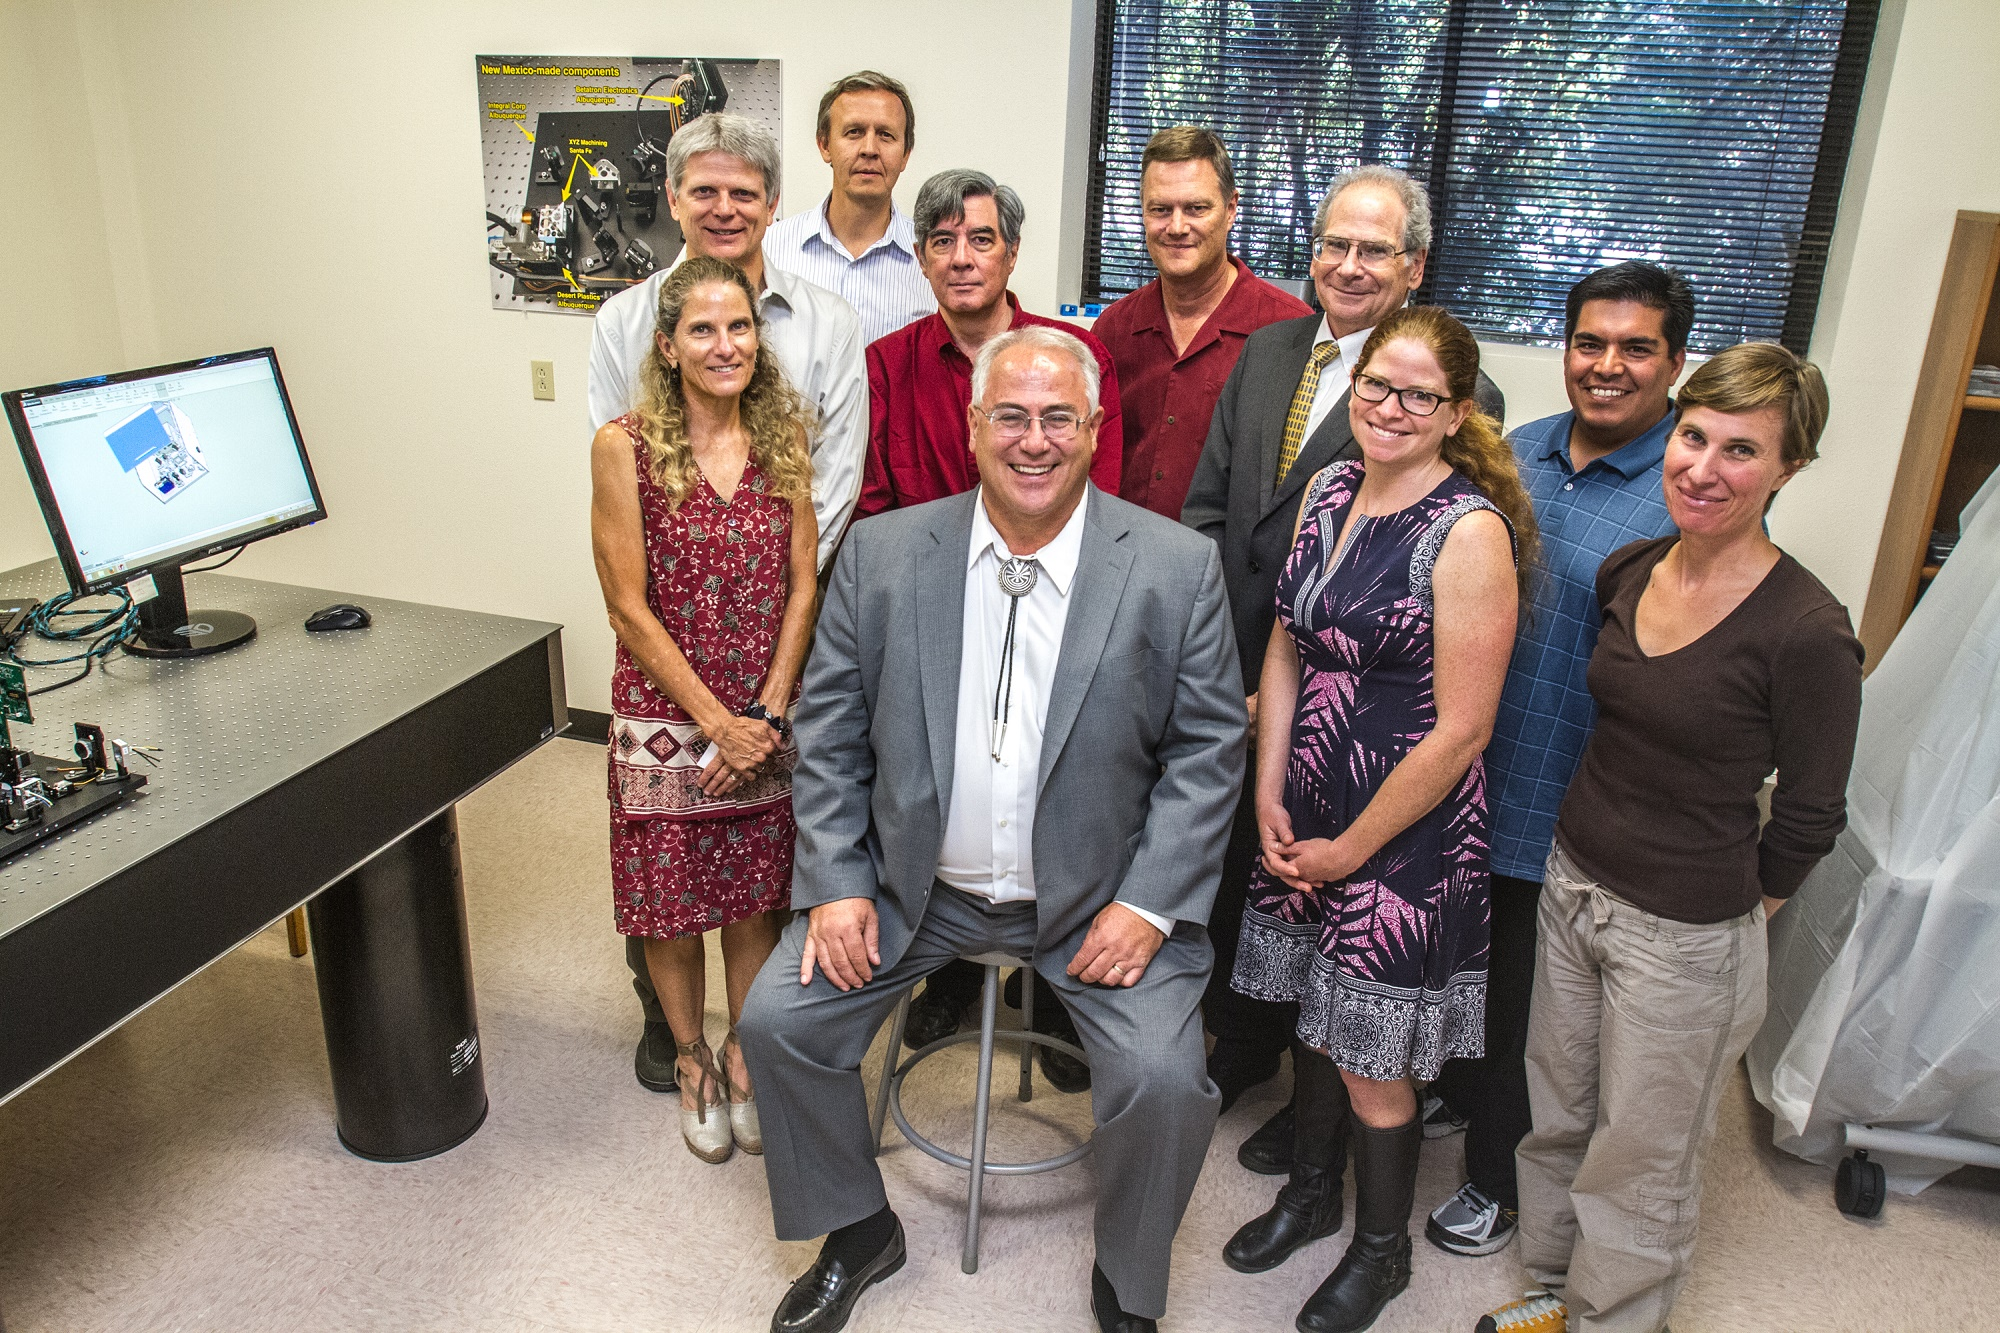 The staff of Santa Fe-based Mesa Photonics, which was recognized as a 20/20 company in 2013. Santa Fe Mayor Pro Tem Peter Ives is seated. Photo by Jane Phillips.